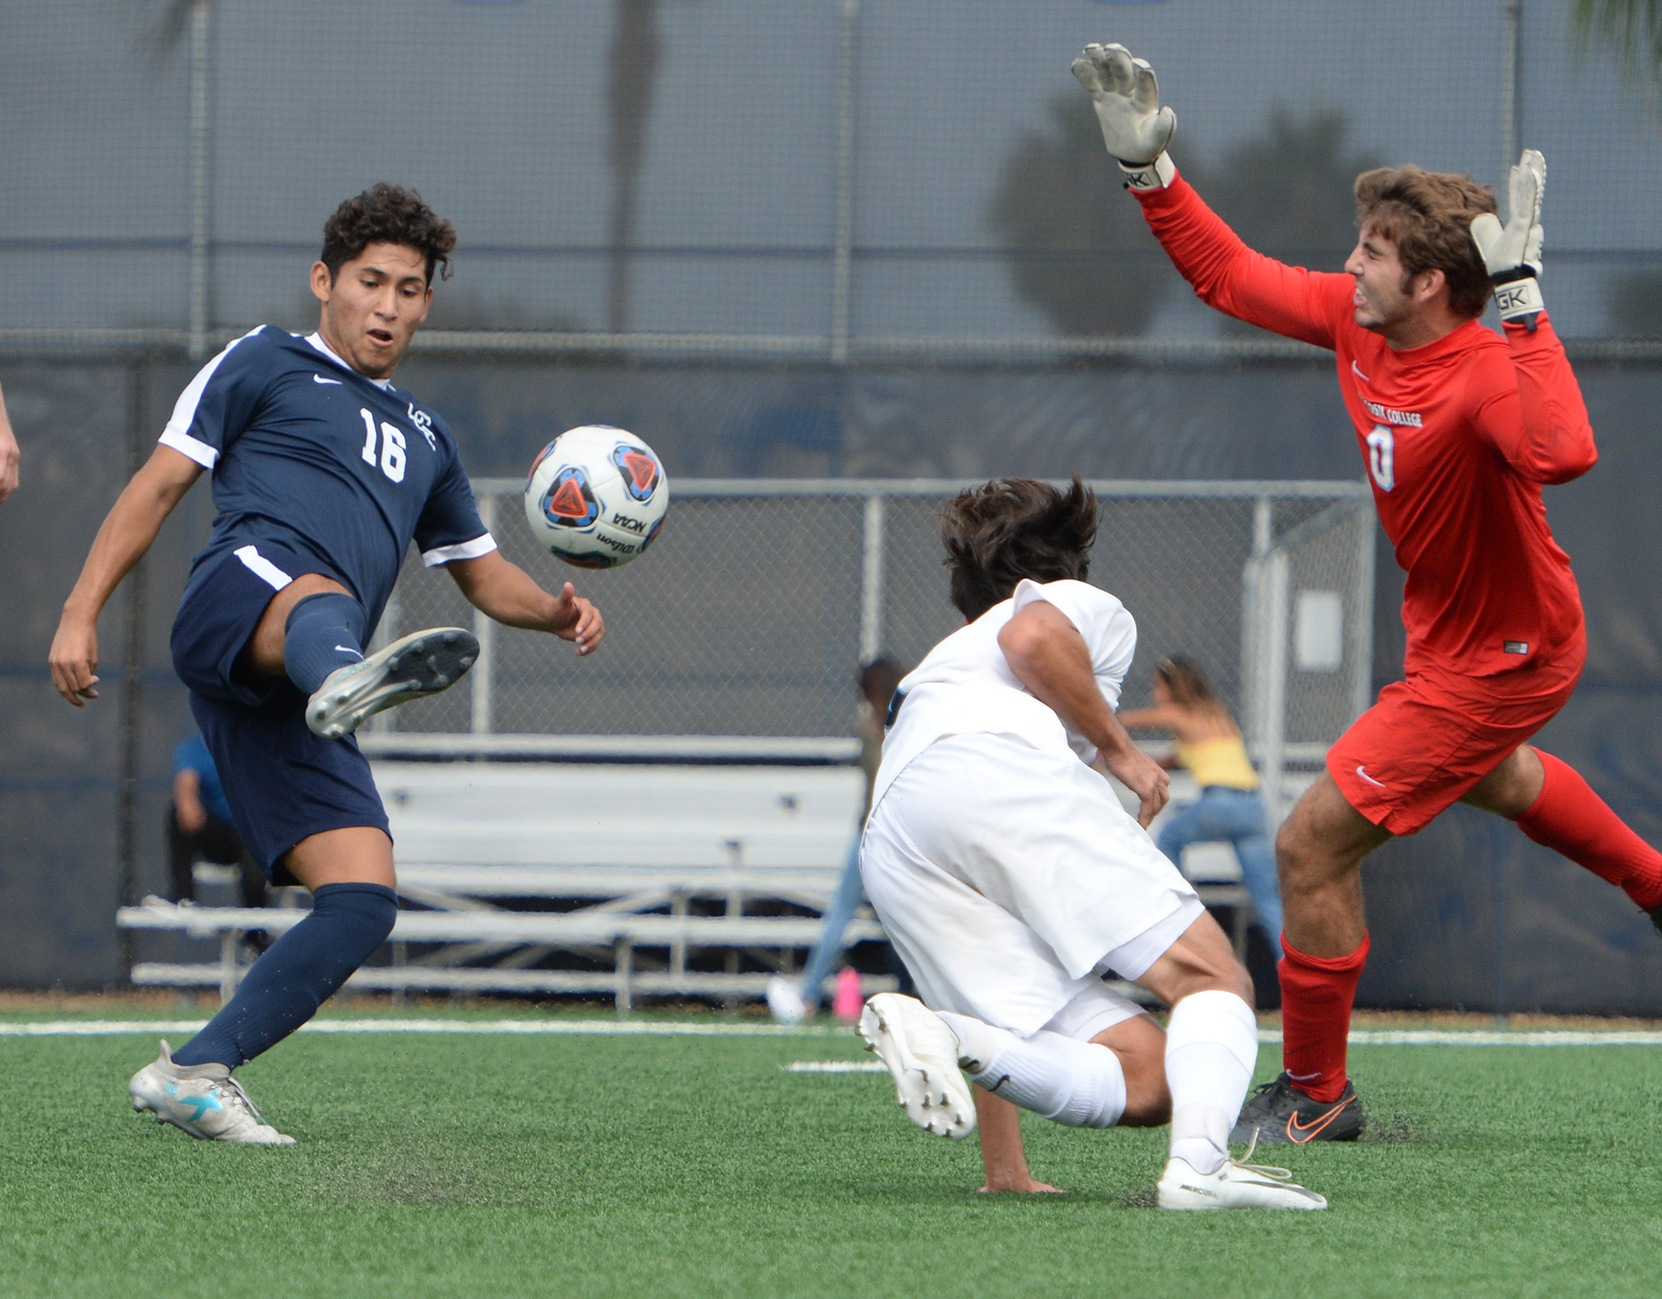 Pirates leave Norco seeing red with 3-0 win